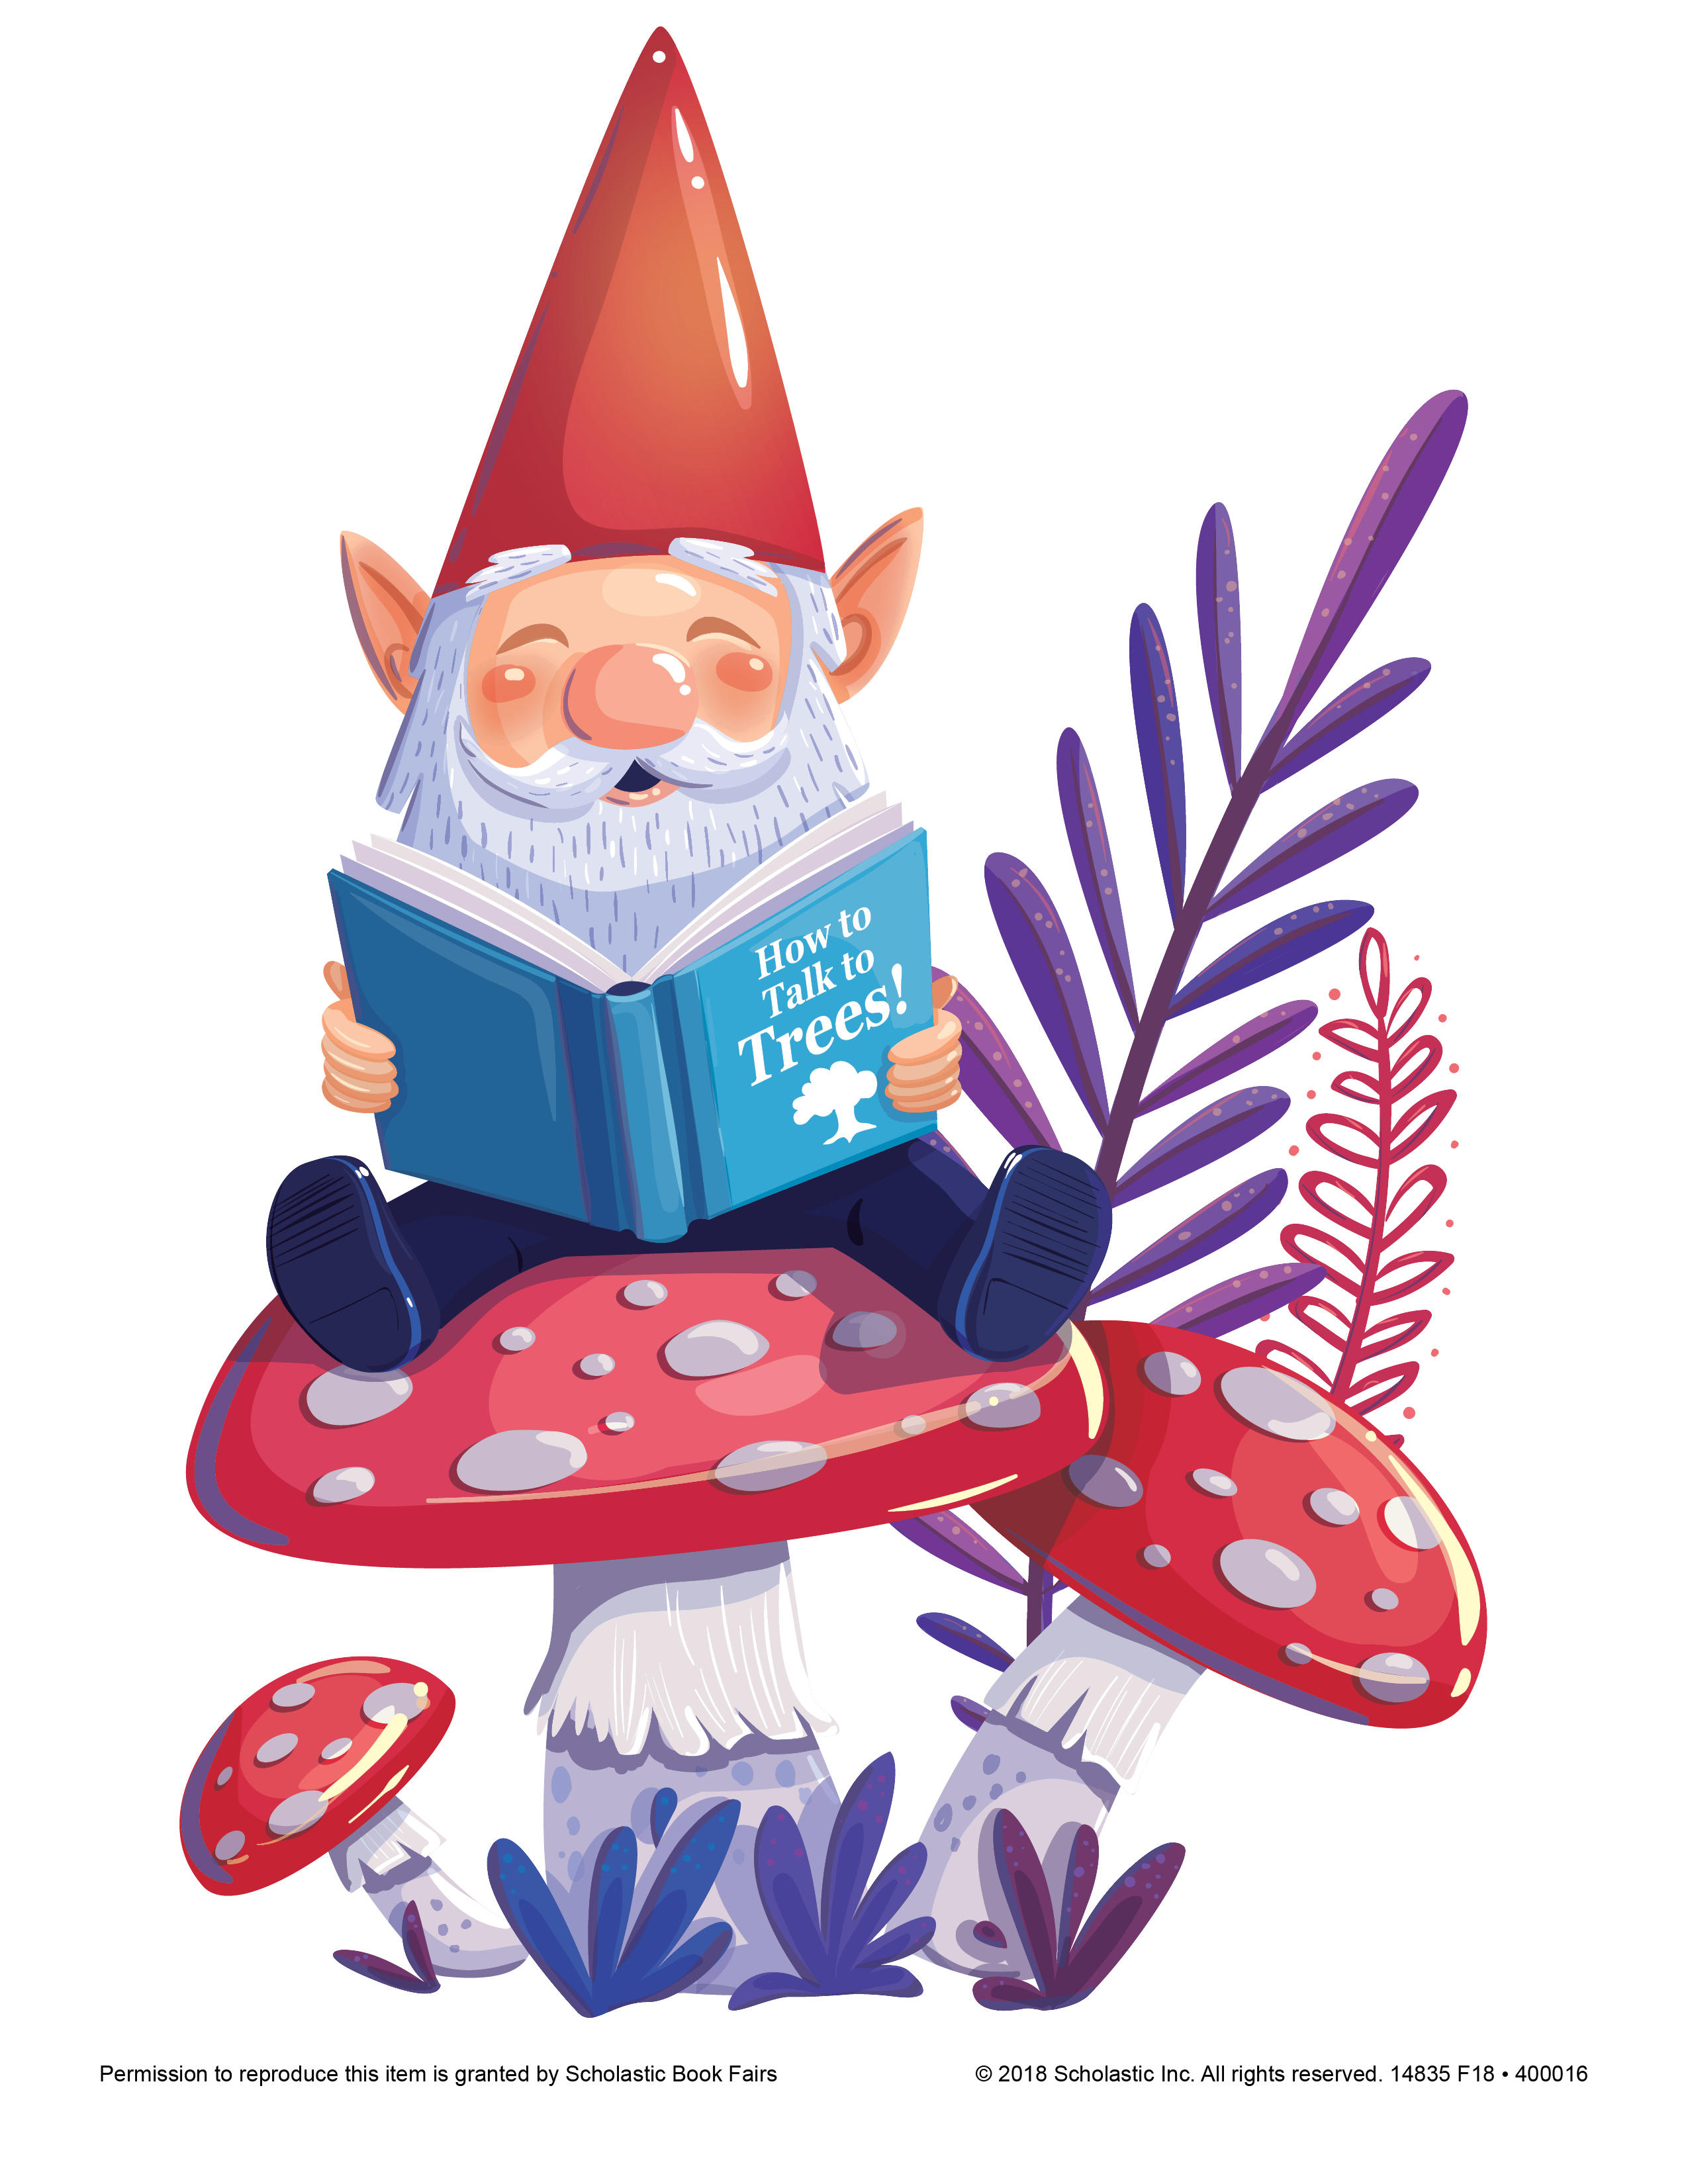 https://bookfairs.scholastic.com/bookfairs/cptoolkit/assetuploads/400016_enchanted_forest_clip_art_gnome_toadstool.png